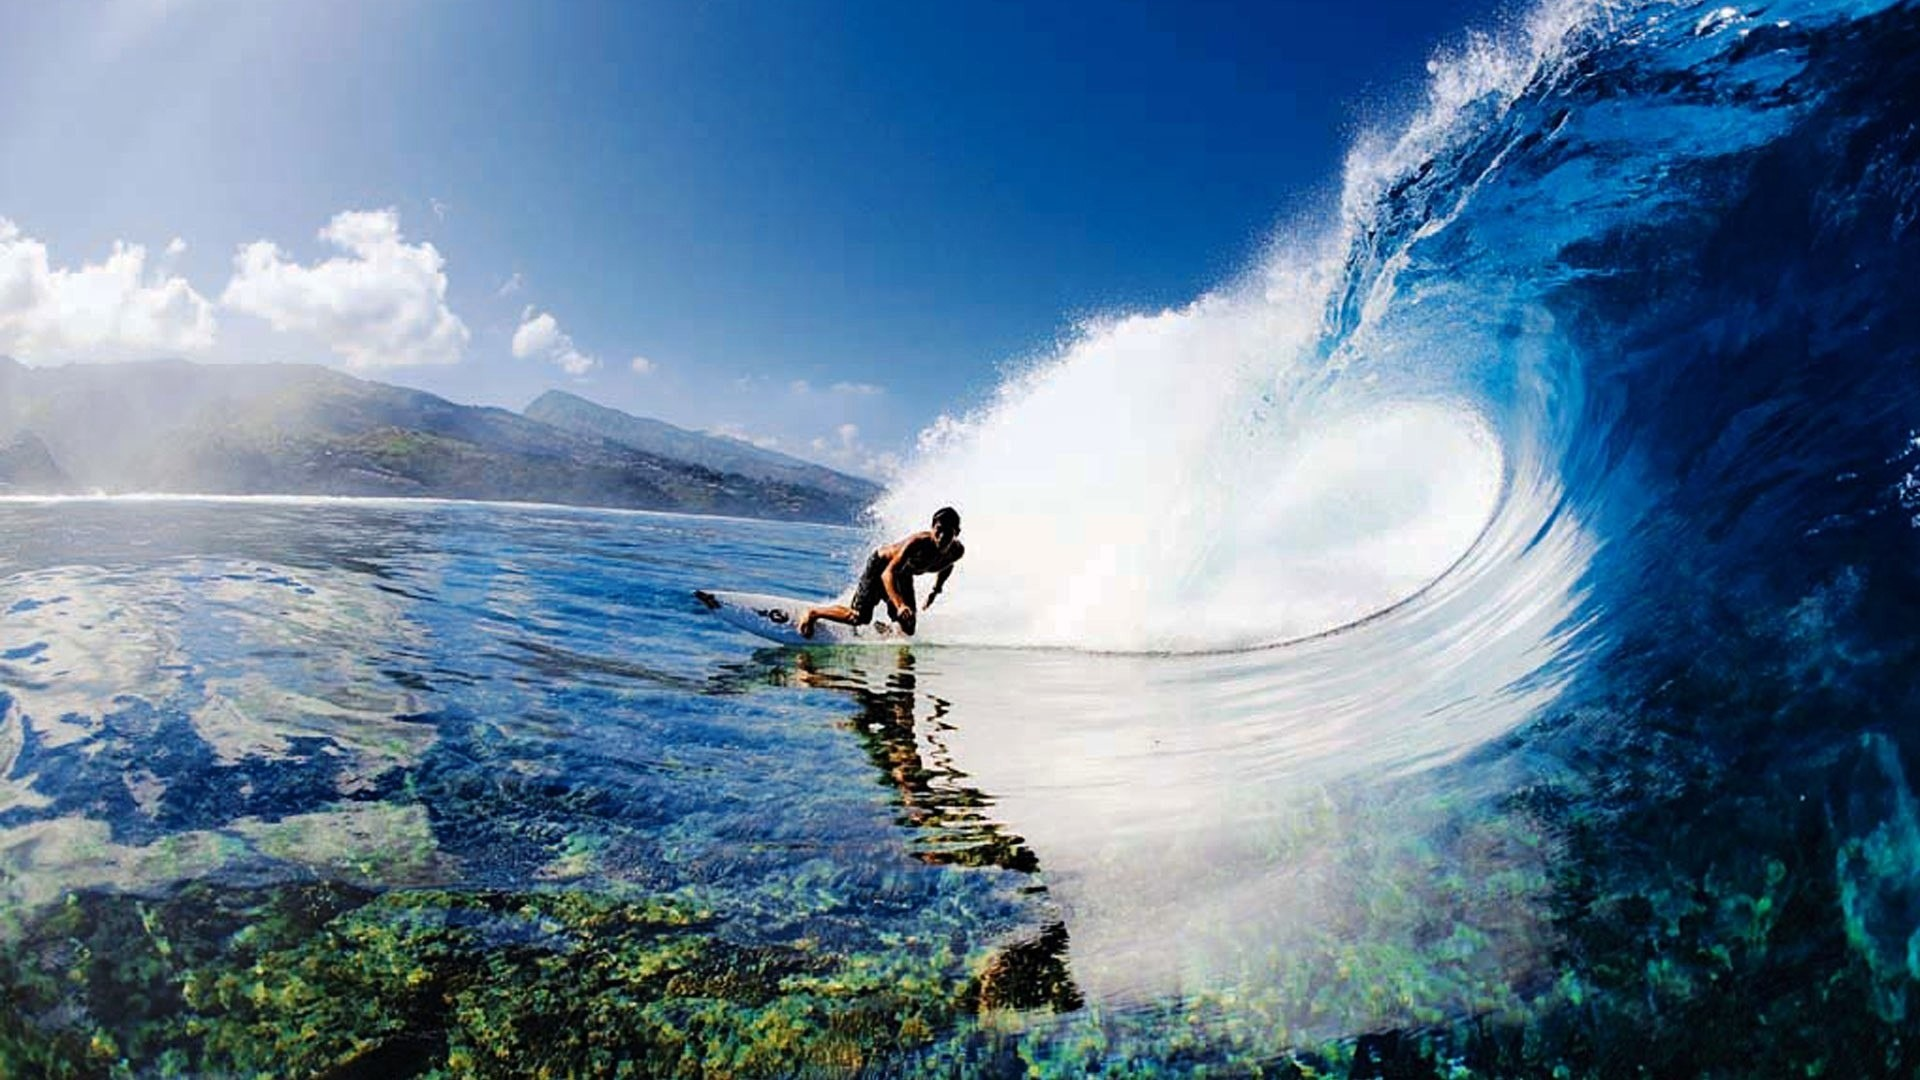 Surfing Waves Wallpapers HD Resolution with Wallpaper High Resolution  px 428.44 KB